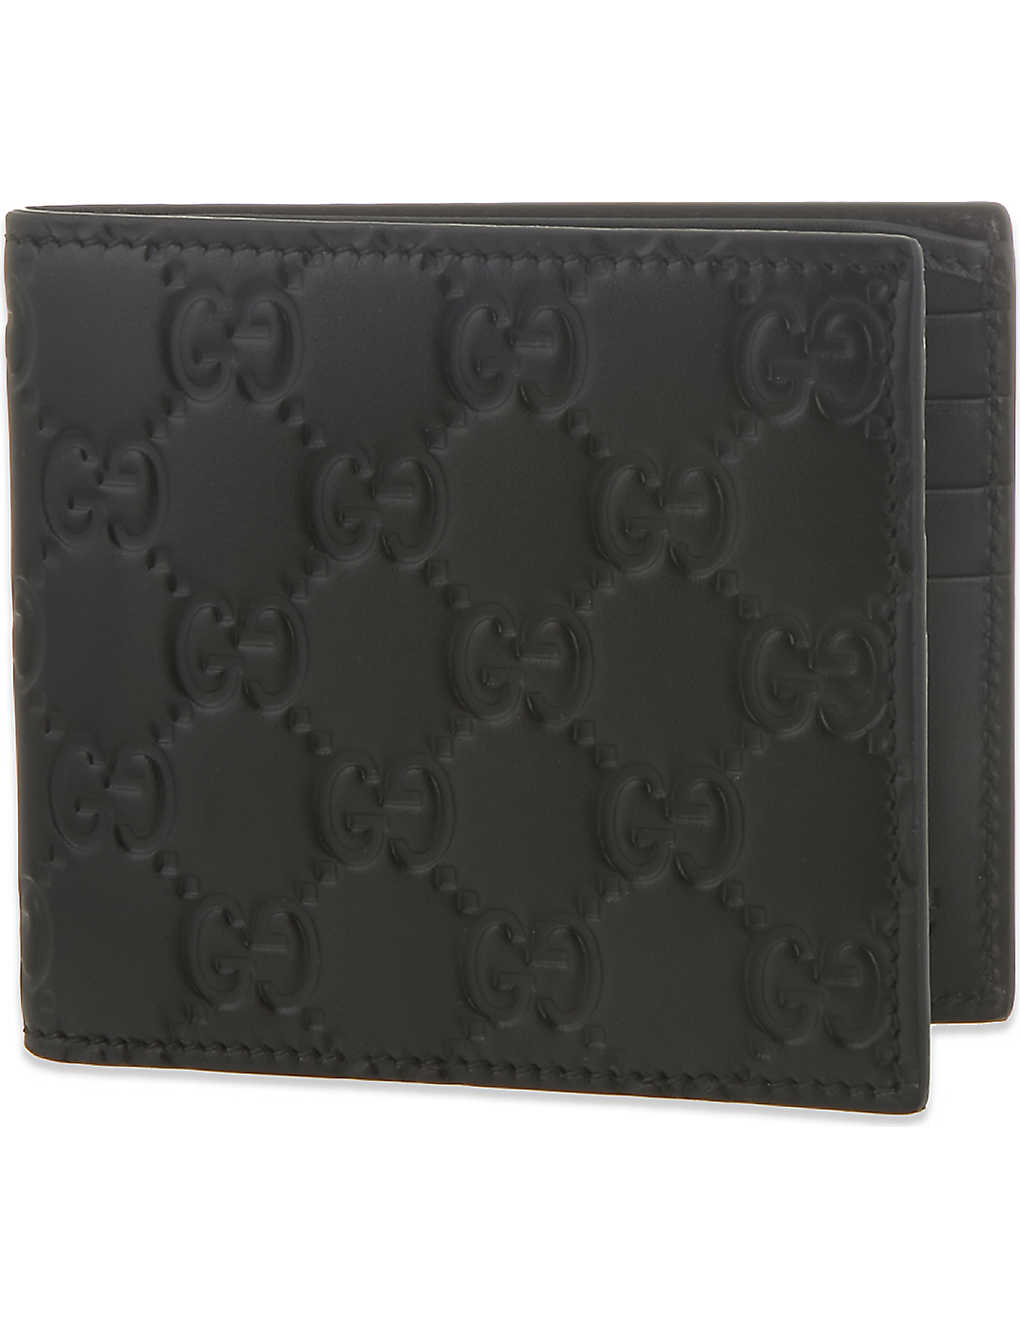 b0c28b233321 GUCCI - GG logo leather billfold wallet | Selfridges.com